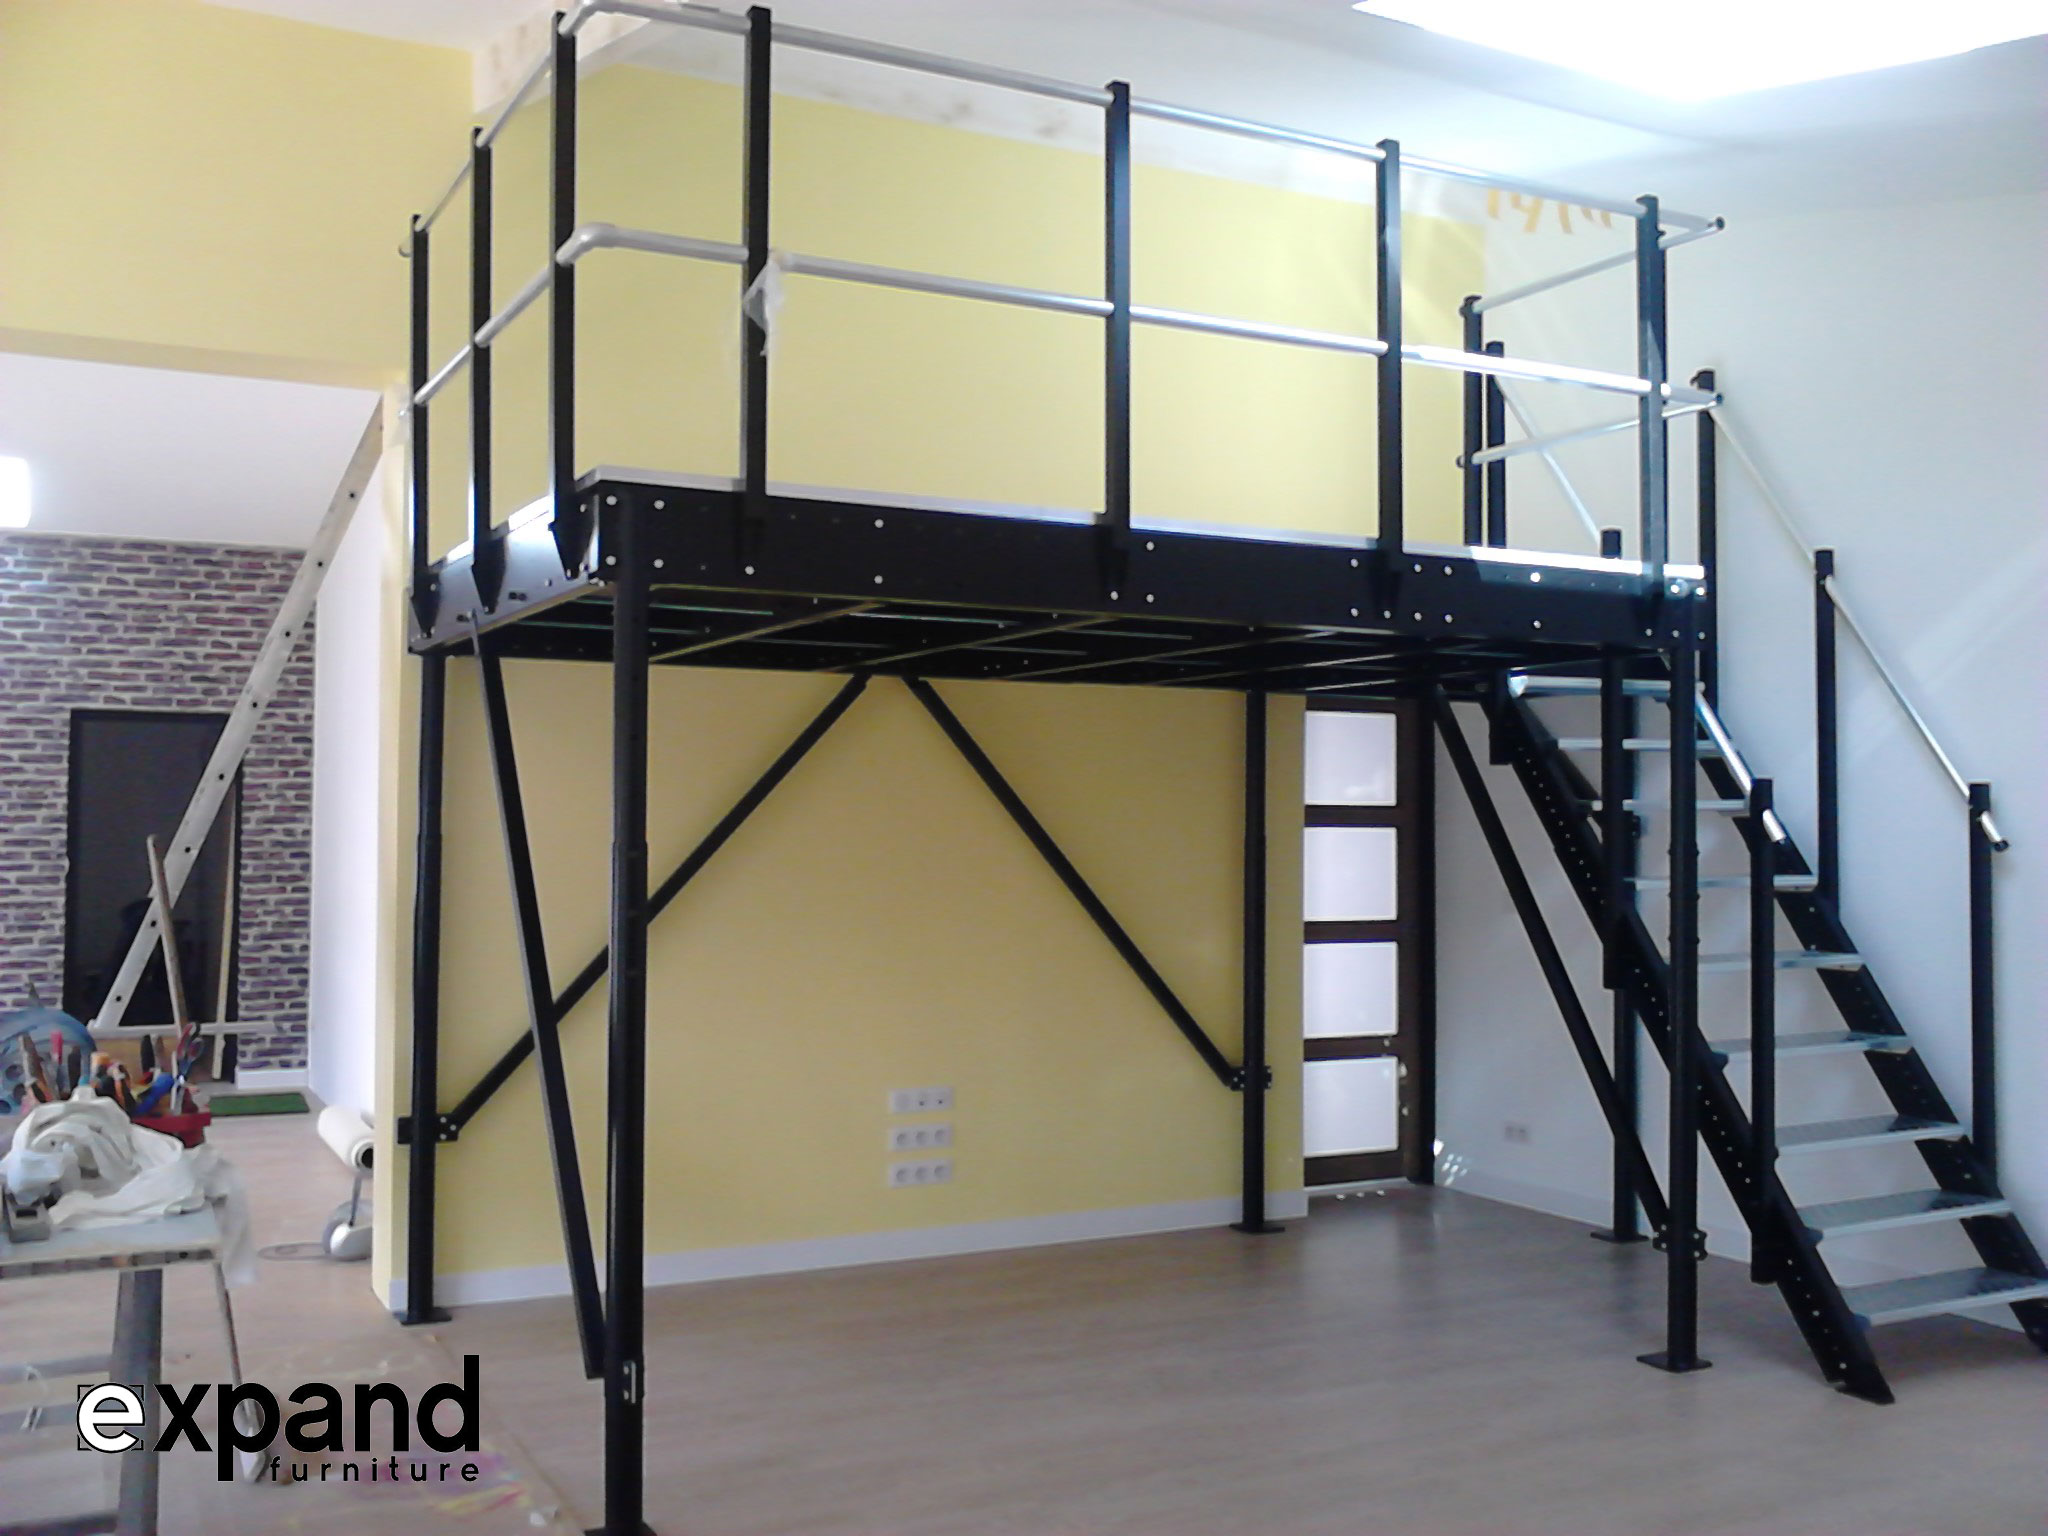 Custom loft package expand furniture folding tables smarter wall beds space savers - Expand furniture ...